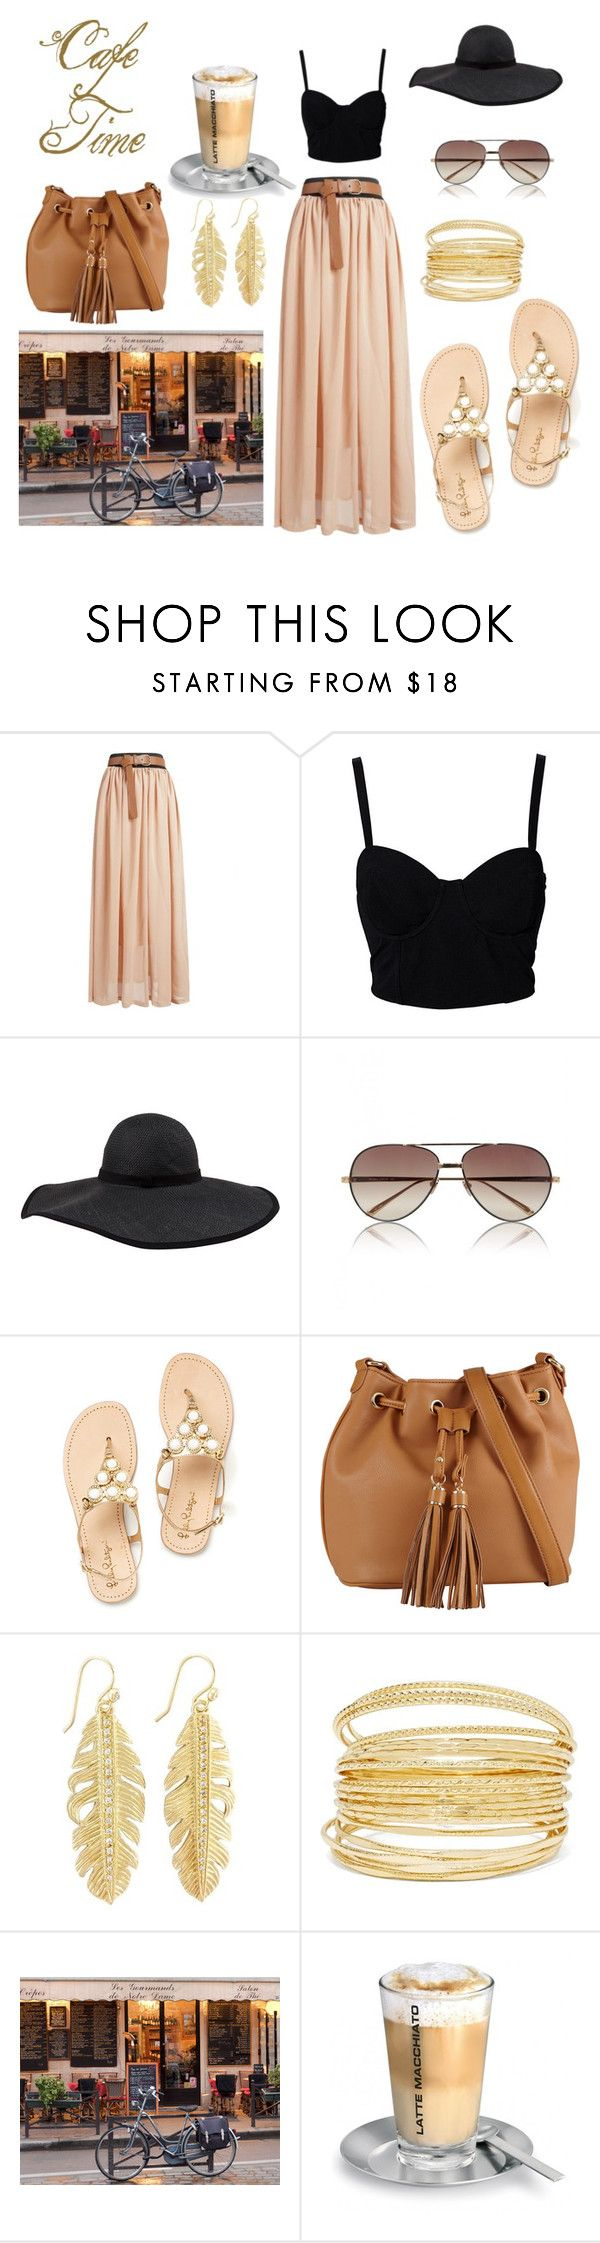 """Summer Cruise Outfit"" by stephanielowe ❤ liked on Polyvore featuring SELECTED, Frette, Linda Farrow and ALDO"